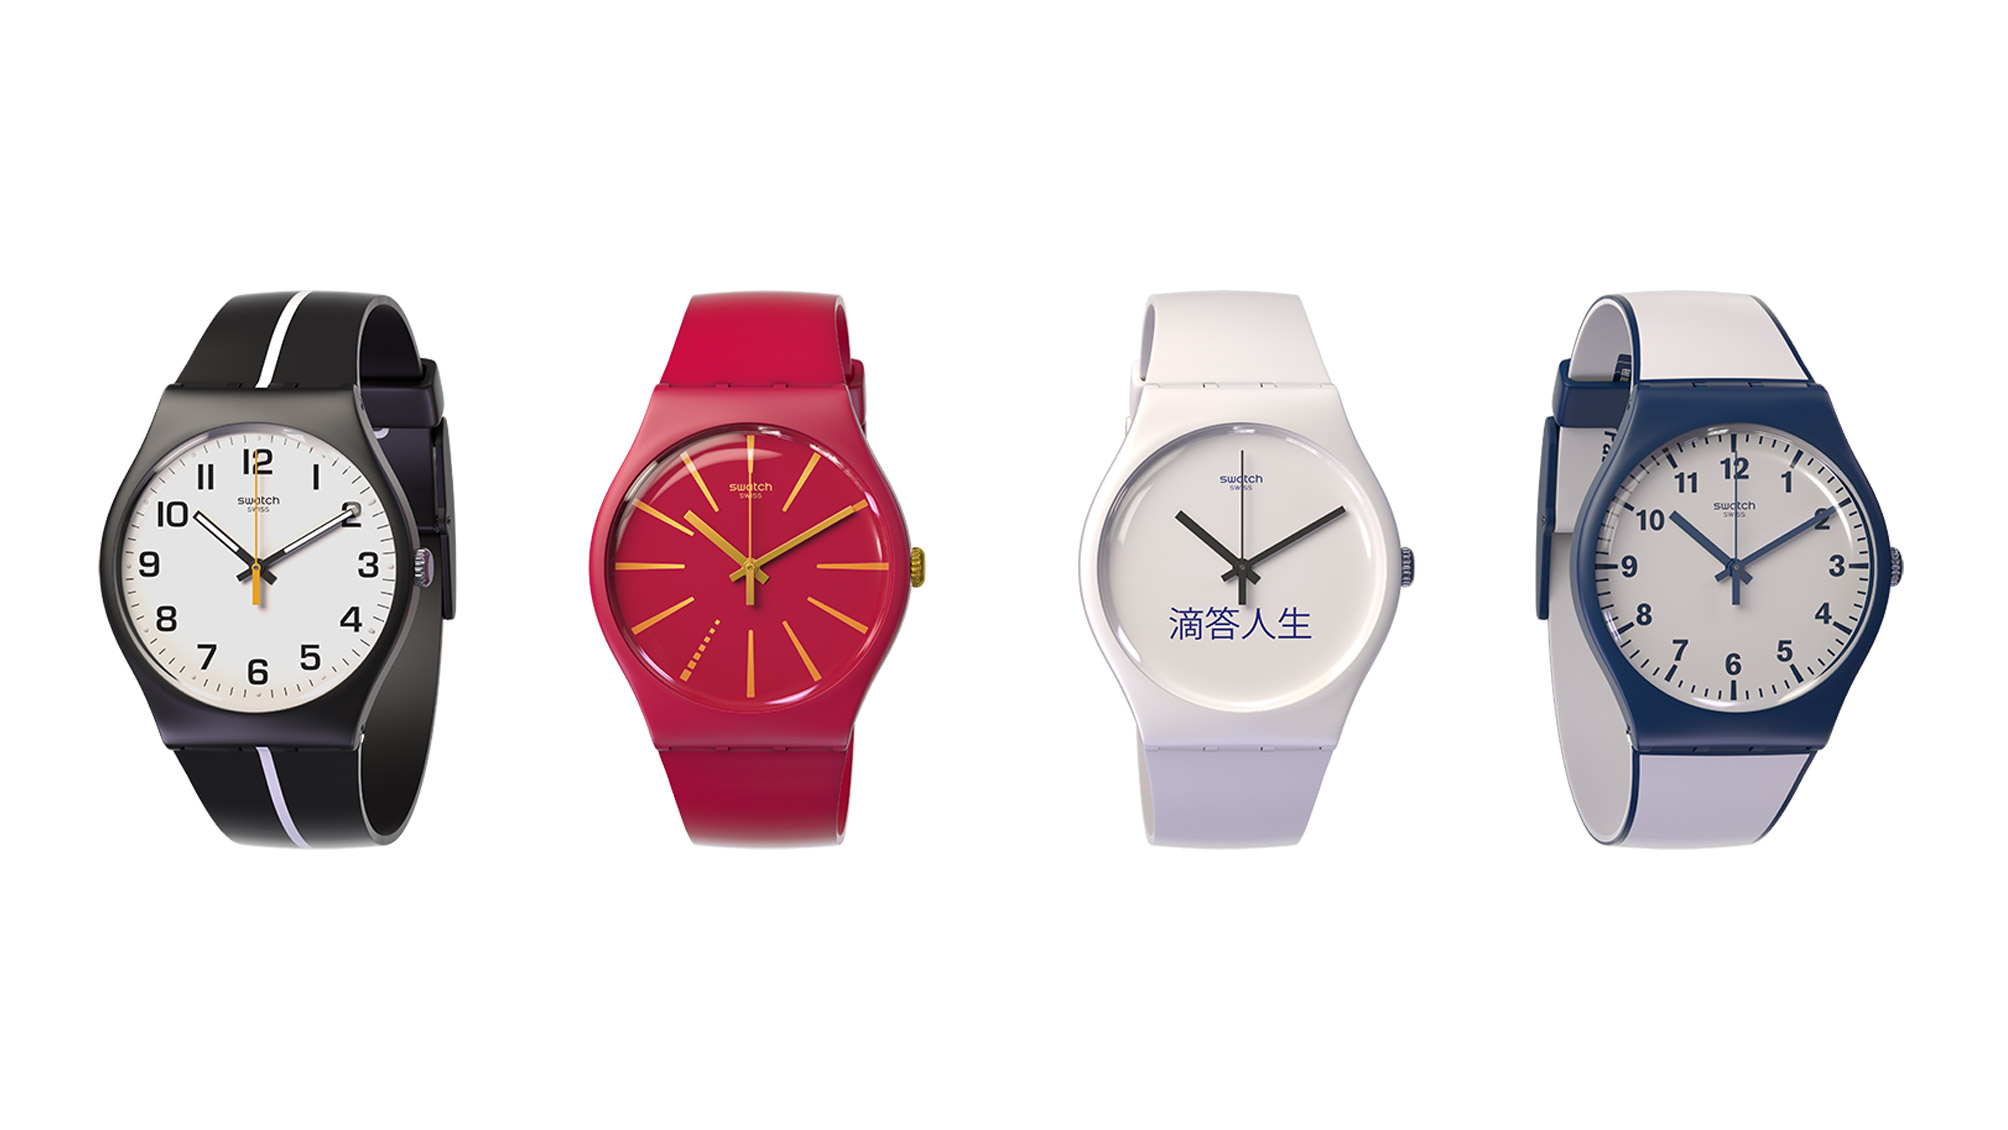 Swatch, Visa To Release Wireless 'Pay-By-The-Wrist' Watch In U.S., Brazil, Switzerland